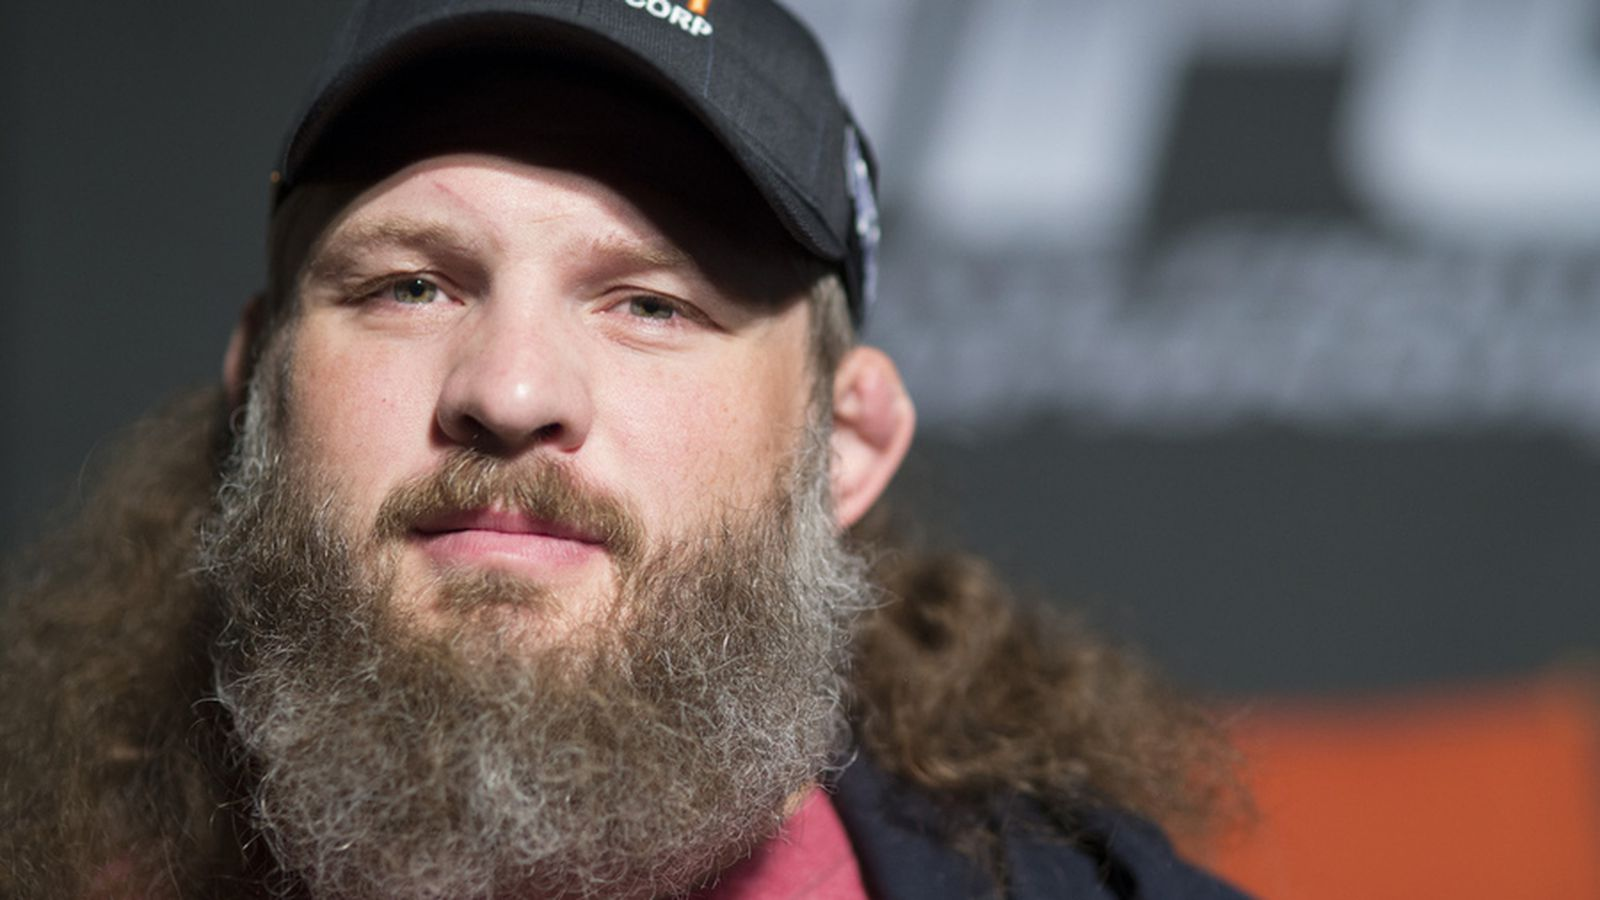 010 roy nelson gallery post.0